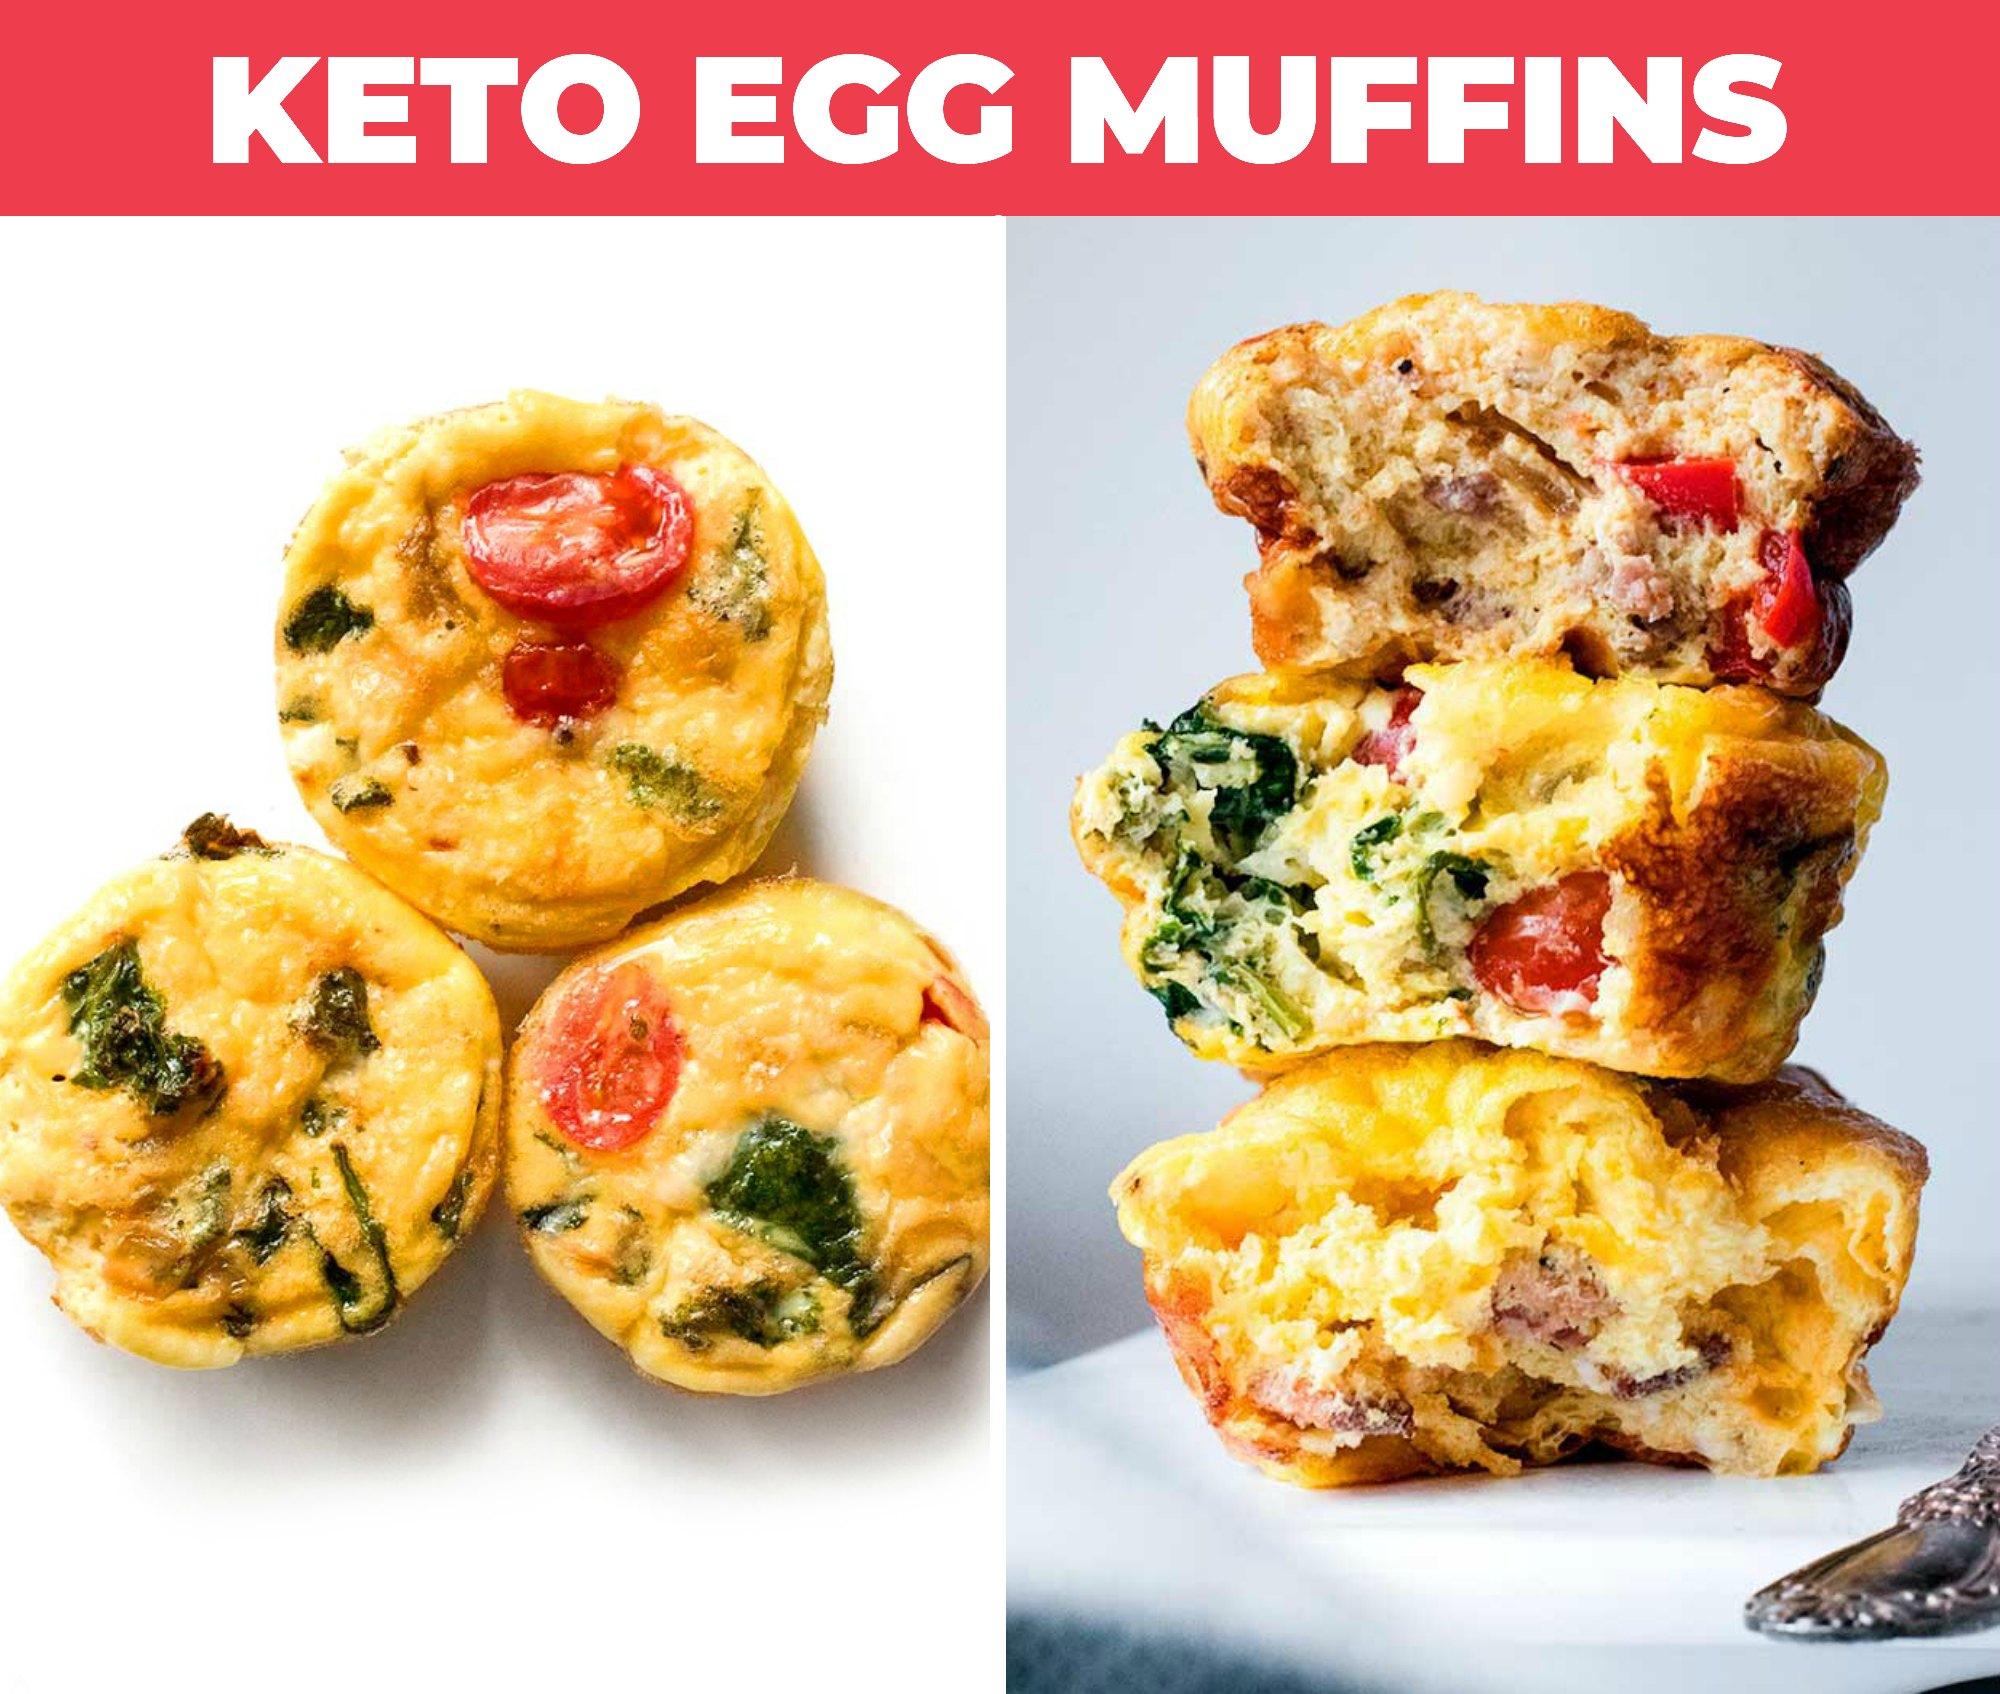 Image of keto egg muffins